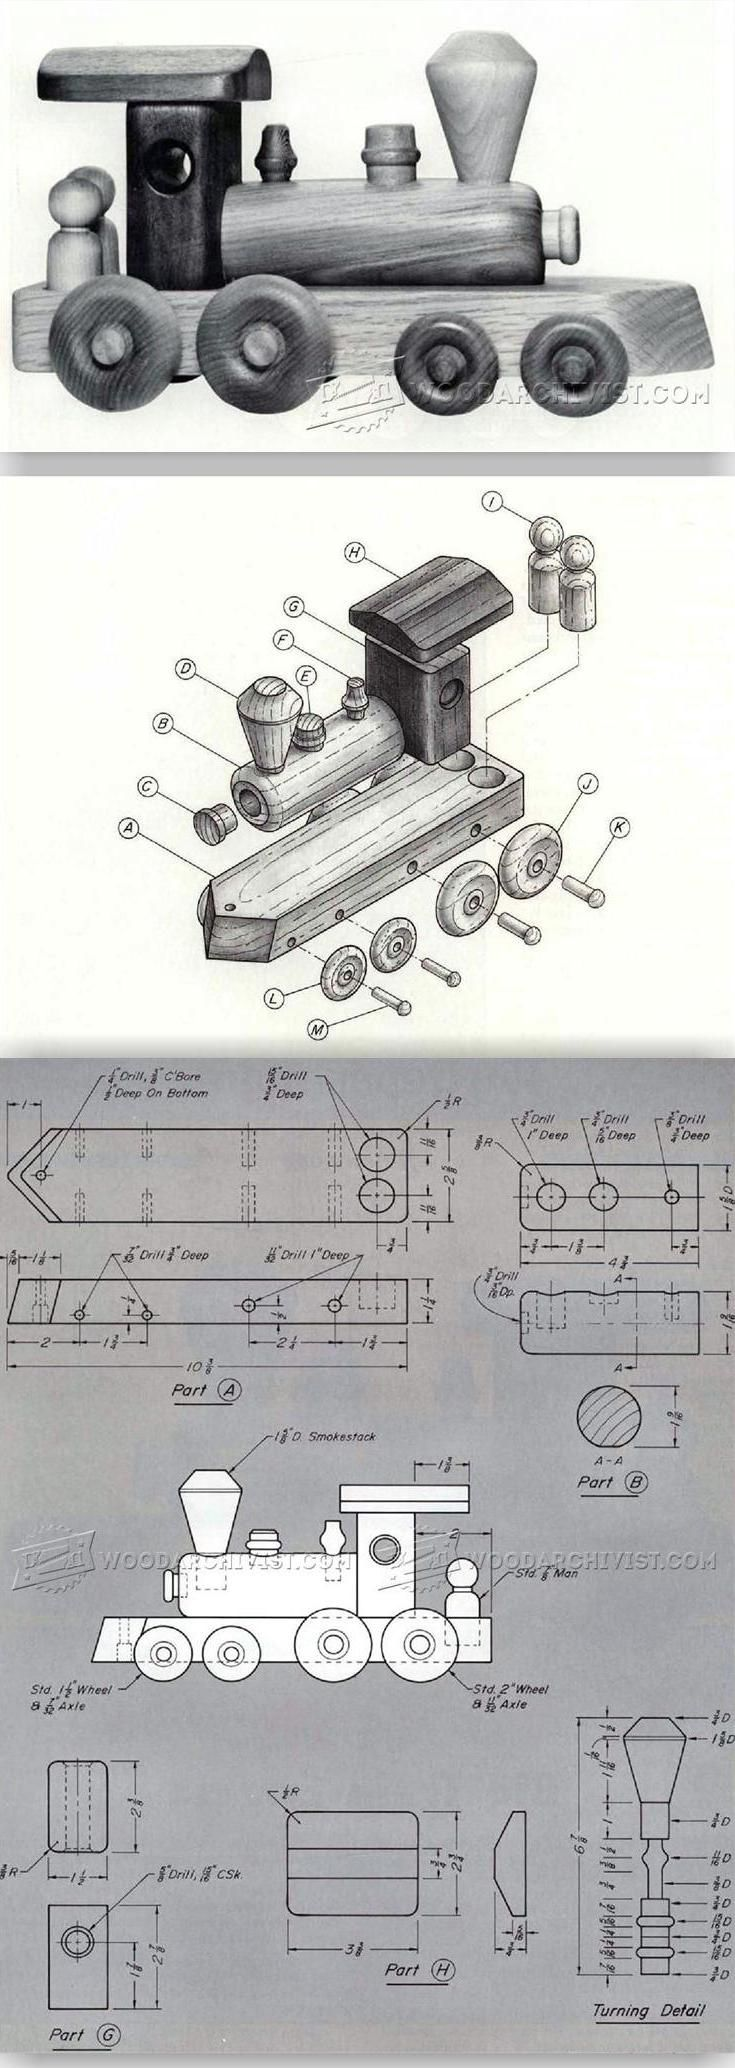 Wooden Toy Train Plans - Wooden Toy Plans and Projects | WoodArchivist.com